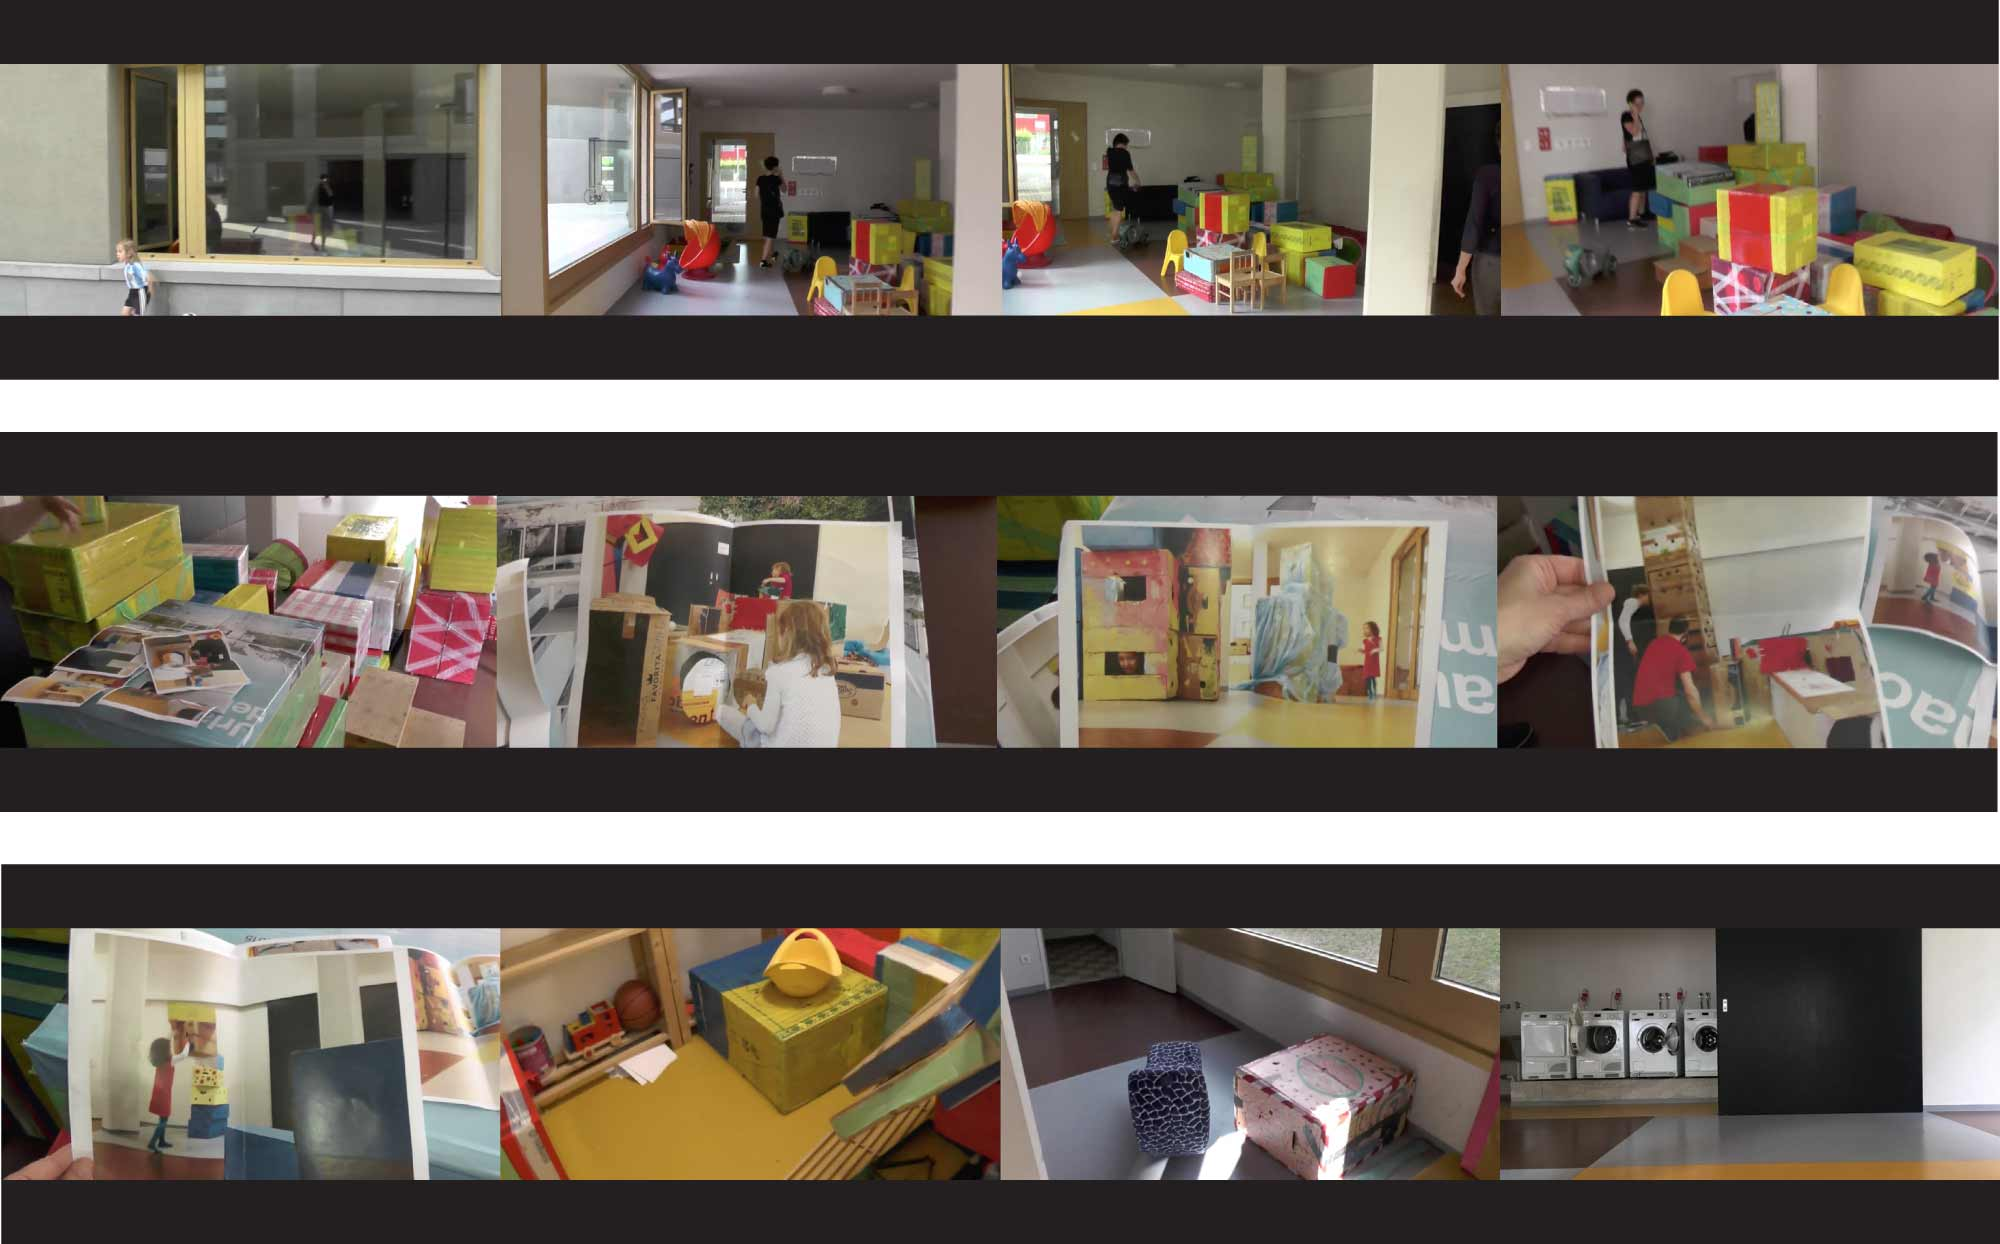 1: Rituals of care: common room with self-built equipment. Video stills: Action Archive + Beatrice Stude